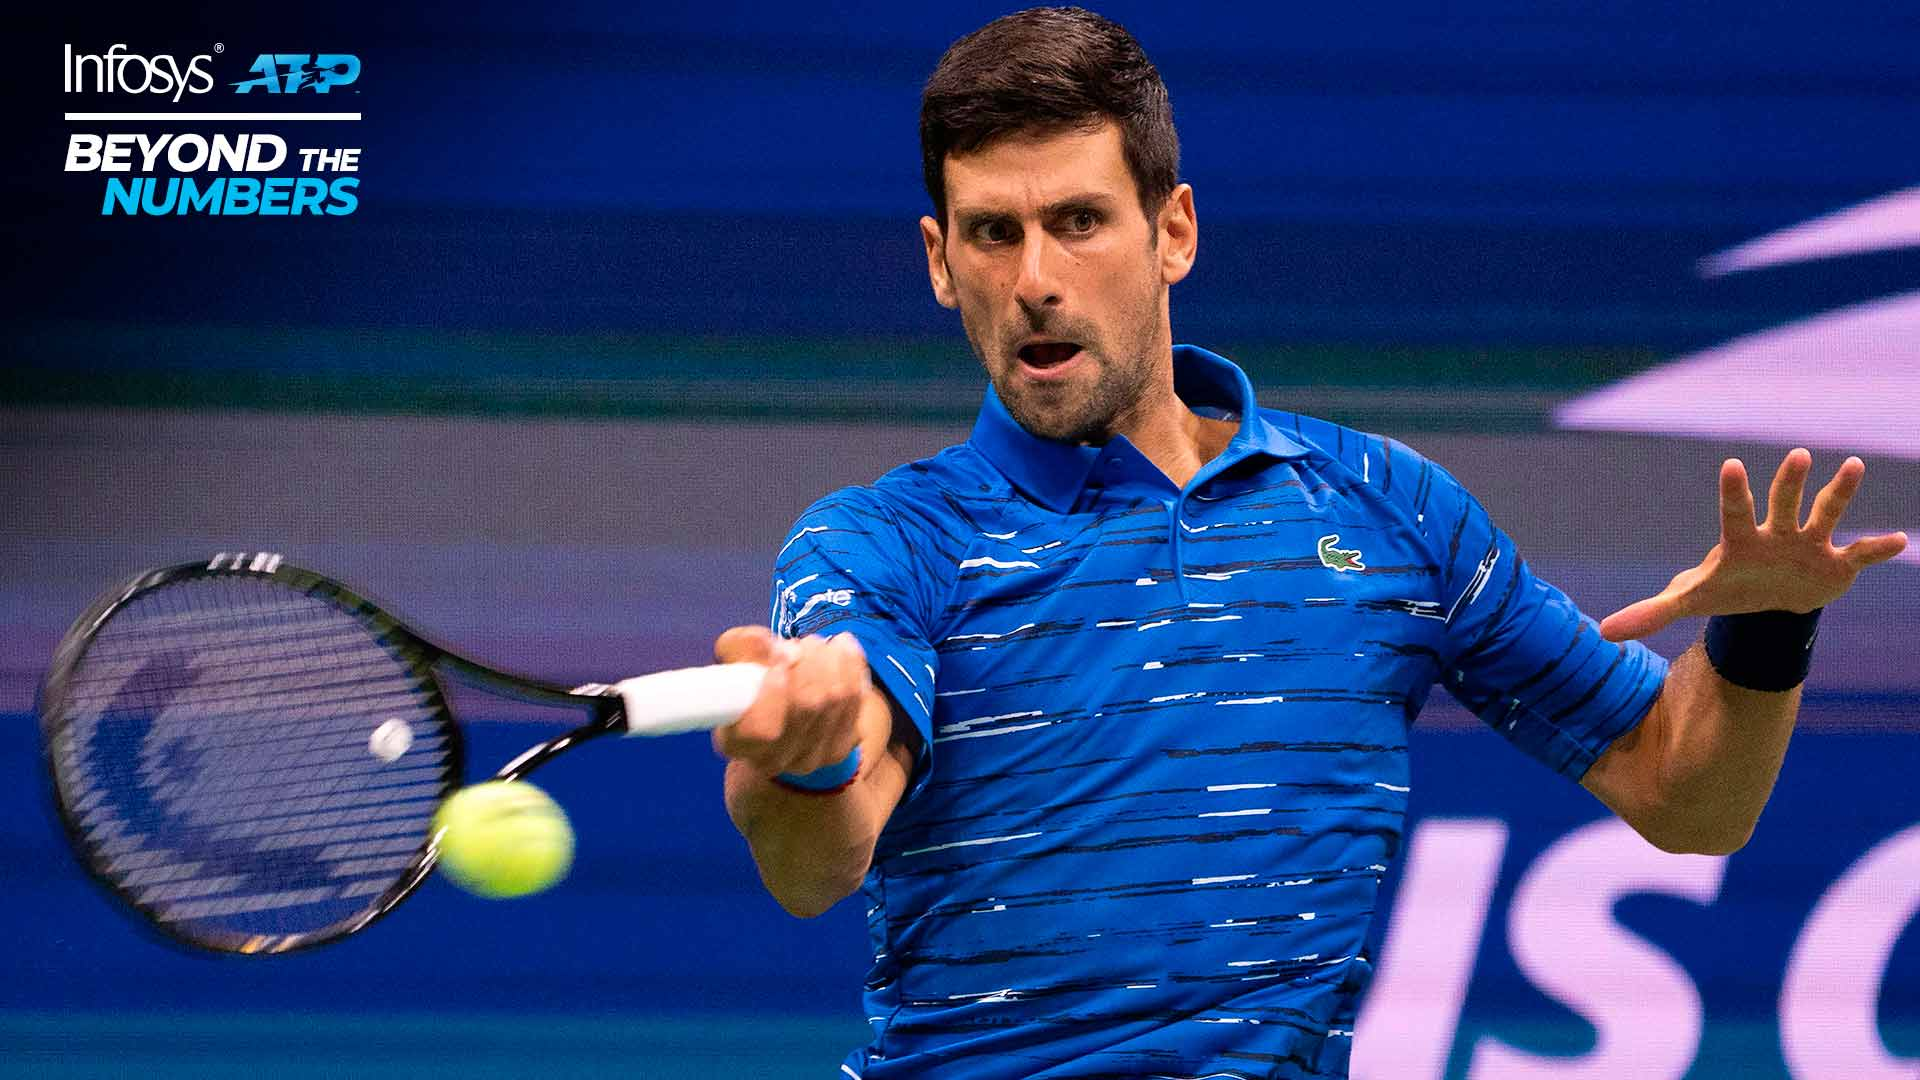 Novak Djokovic is chasing Rafael Nadal in the ATP Race To London and the battle to finish year-end No. 1 in the ATP Rankings.